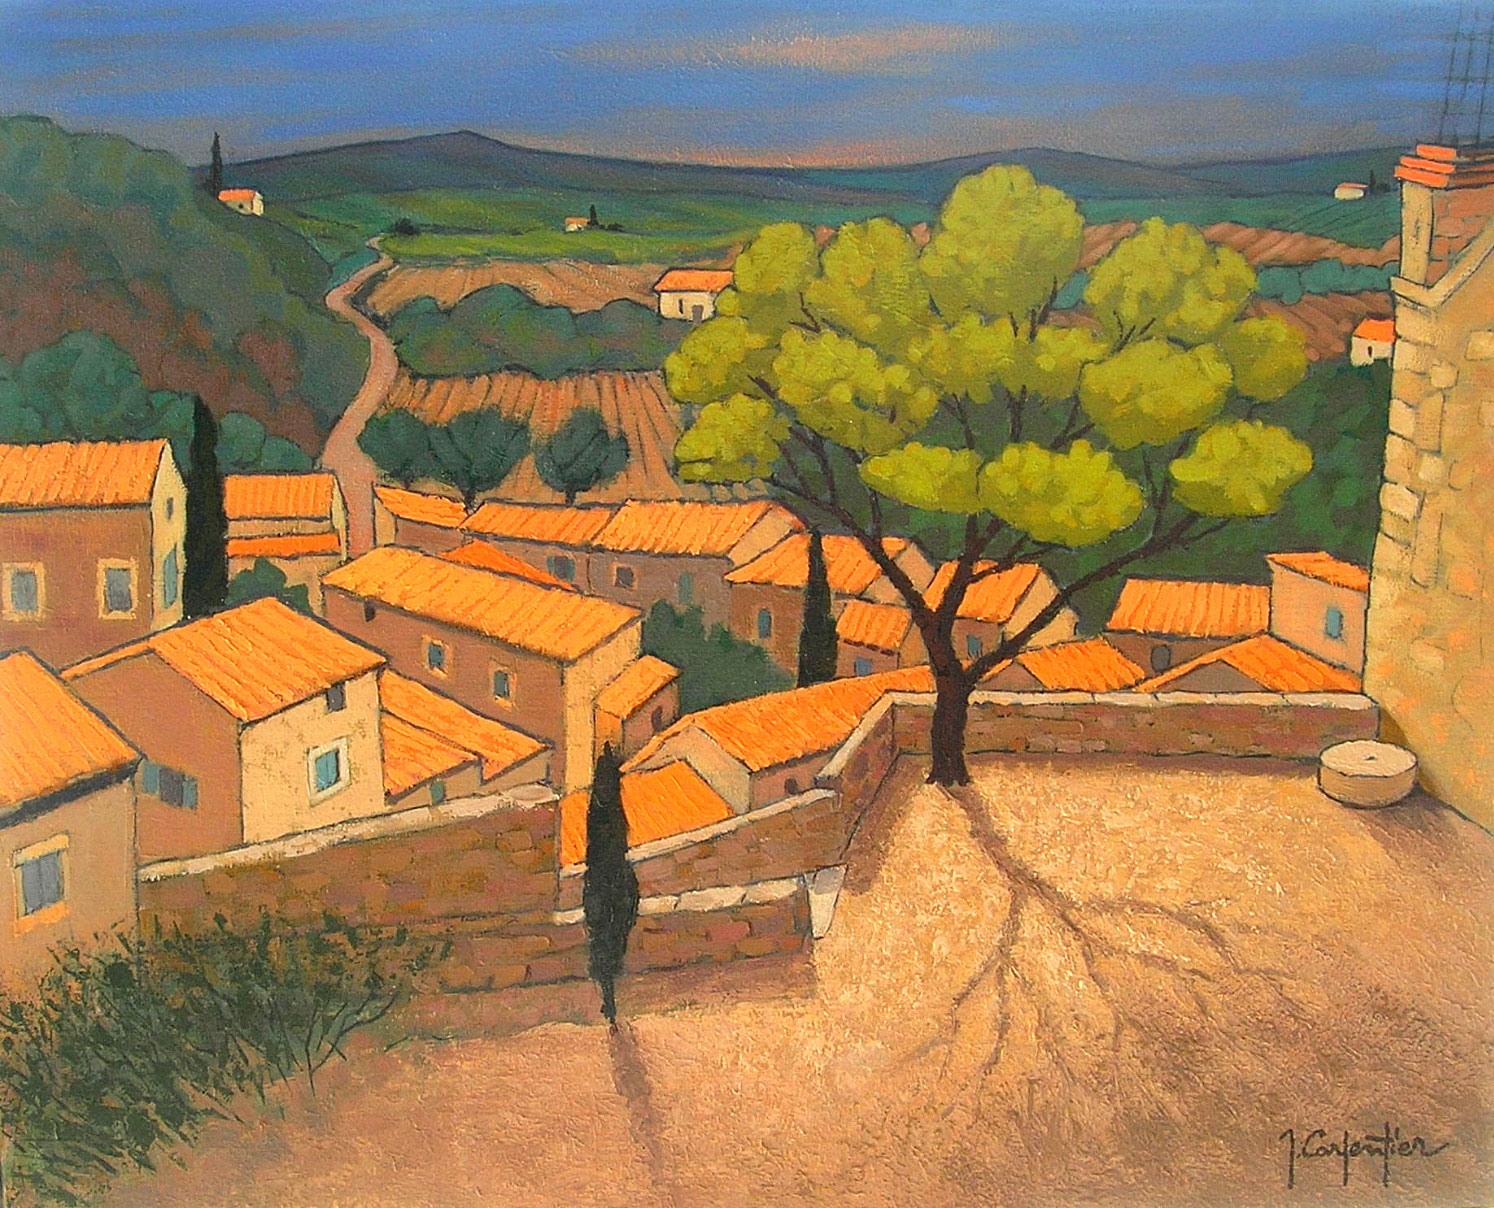 GIGONDAS (VANCHUSE)  oil, 32 x 26 in.